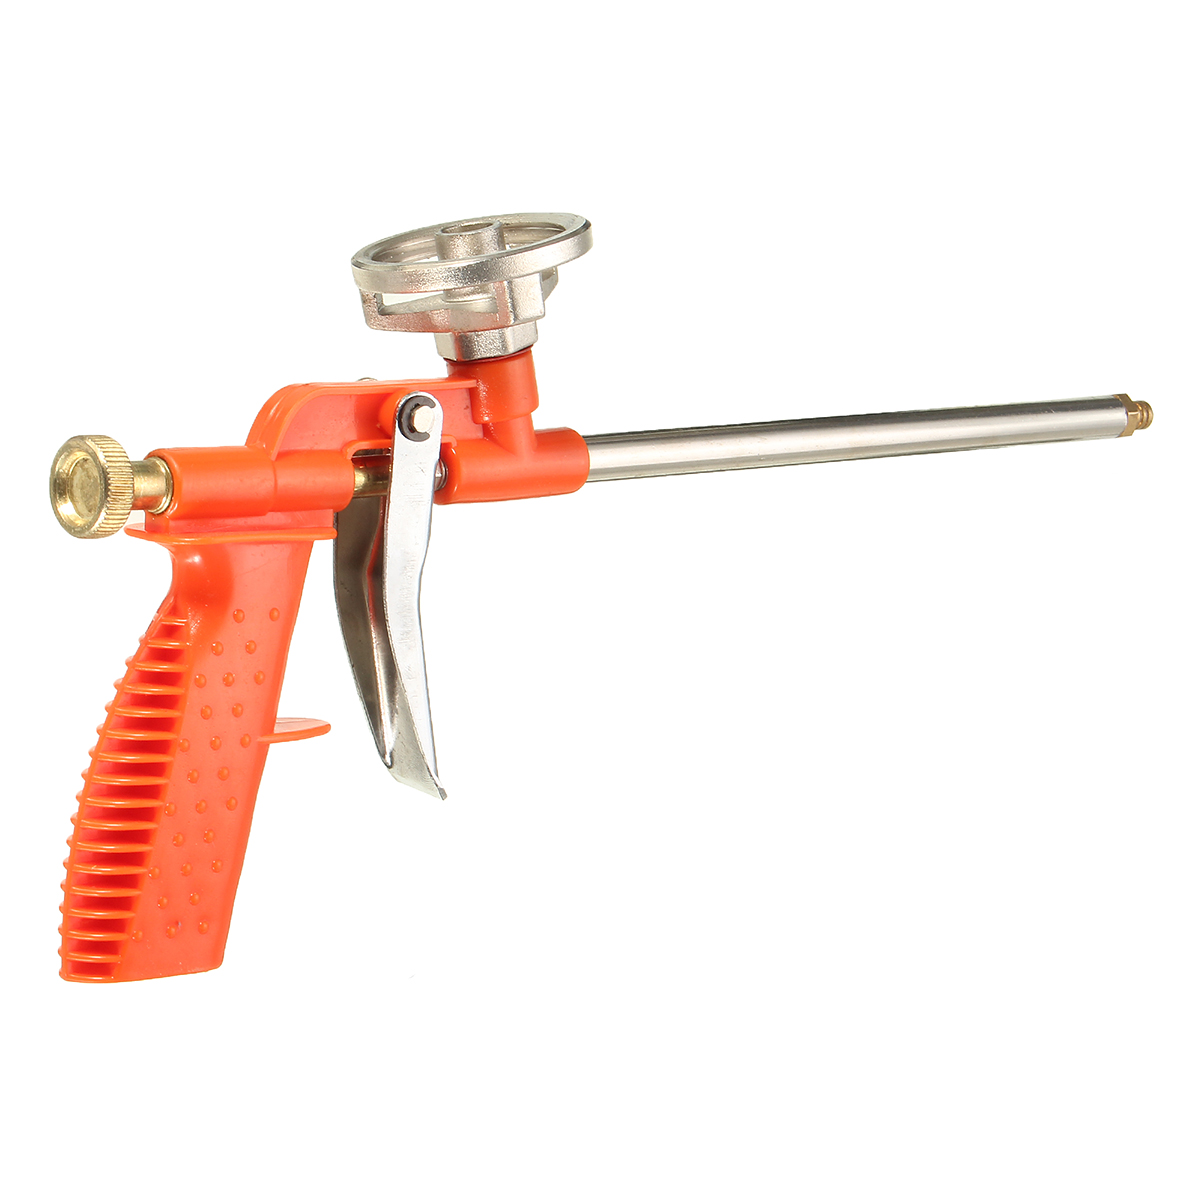 2210MPa Foam Expanding Spray Gun Sealant Dispensing PU Insulating Applicator Adapter Tool